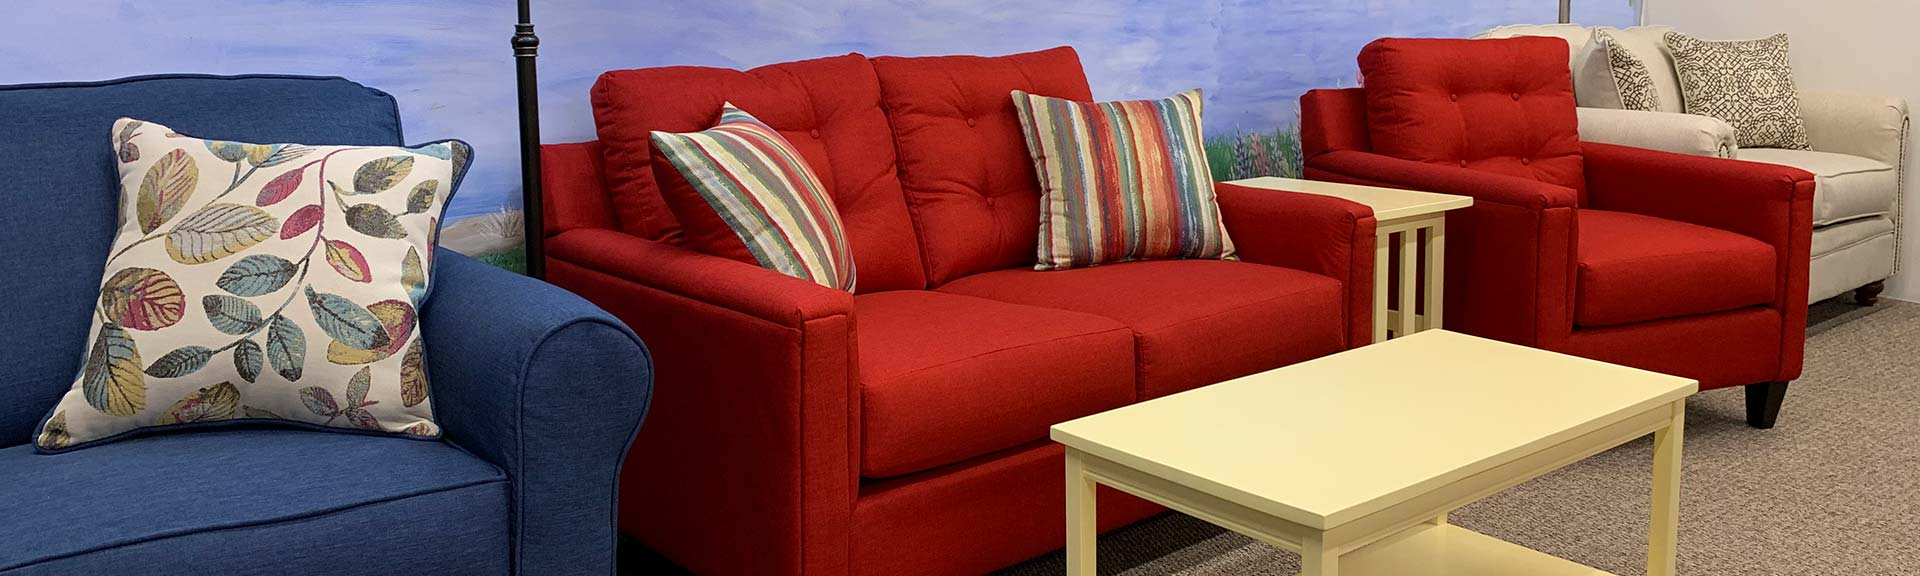 Once you experience the Merrill Furniture showroom  you will be satisfied  that you ve finally found the perfect furniture store. Maine furniture store offering living room furniture  dining room